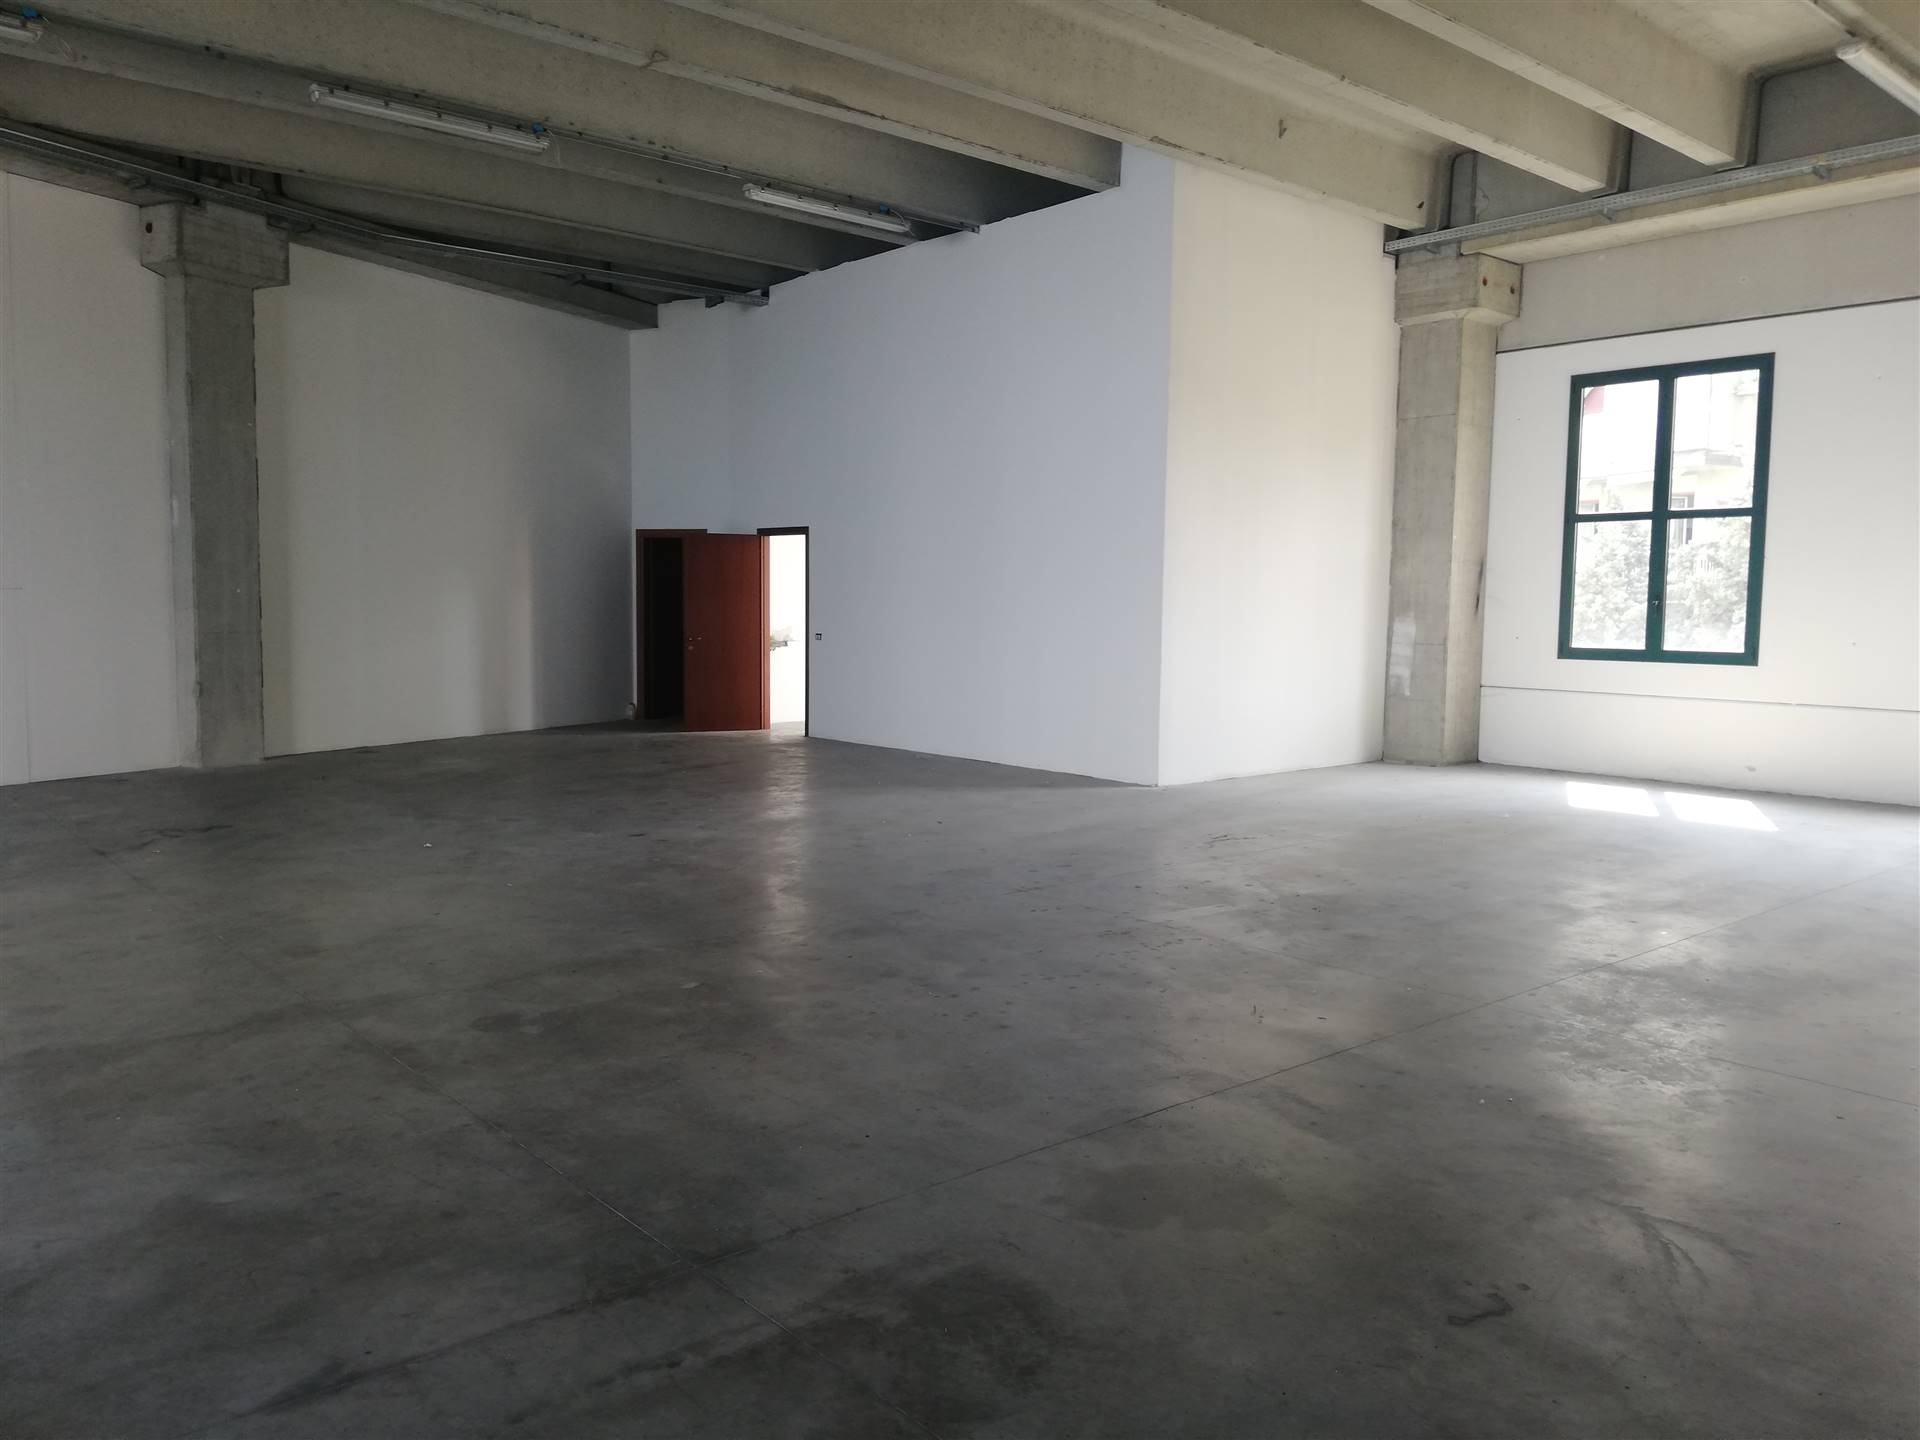 CERNUSCO SUL NAVIGLIO, Laboratory for sale of 340 Sq. mt., Excellent Condition, Heating Non-existent, Energetic class: G, placed at 1° on 1, composed by: 1 Room, 1 Bathroom, Price: € 225,000